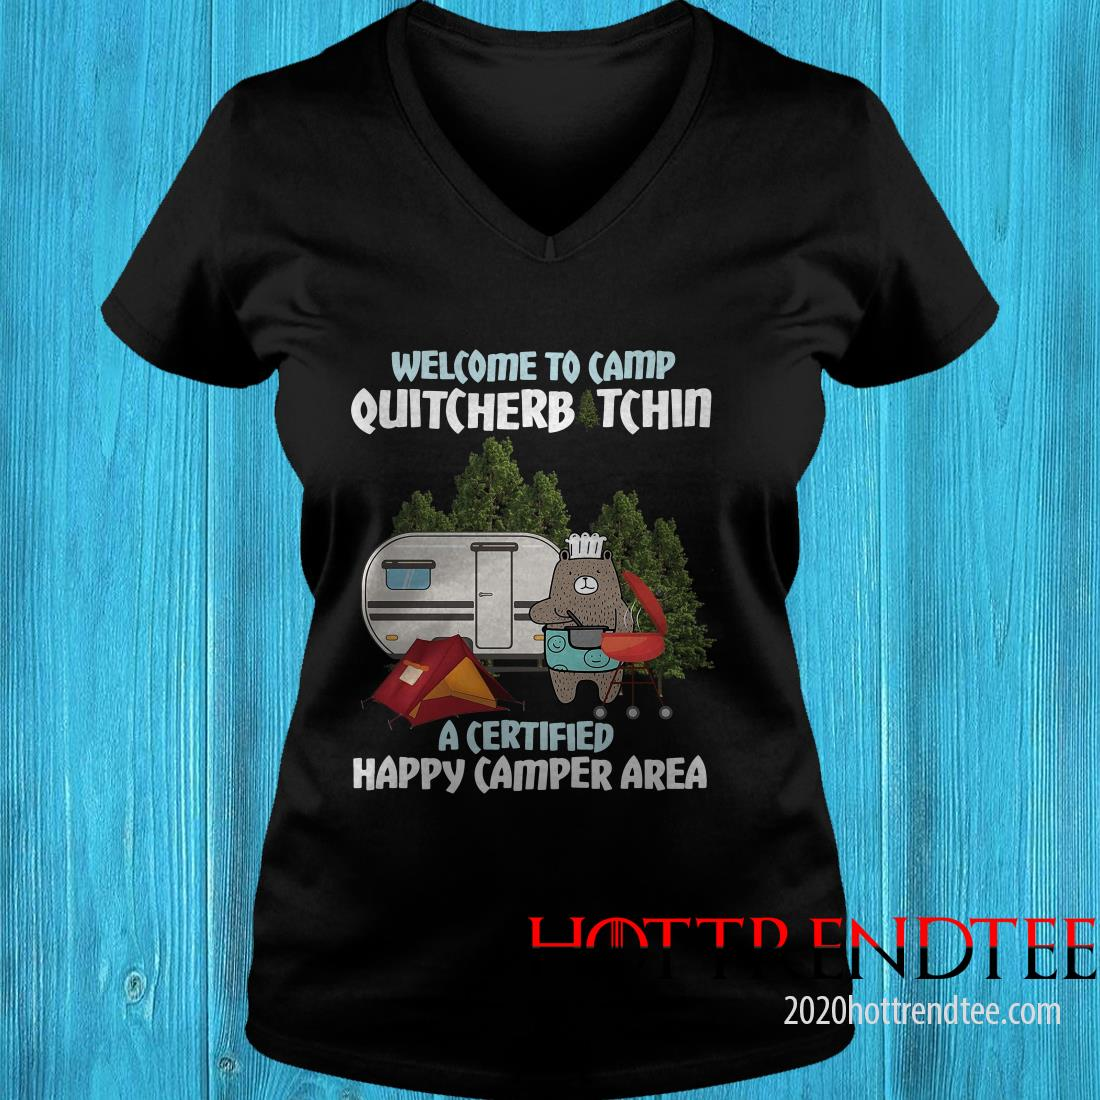 Welcome To Camp Quitcherbitchin A Certified Happy Camper Area Women's T-Shirt